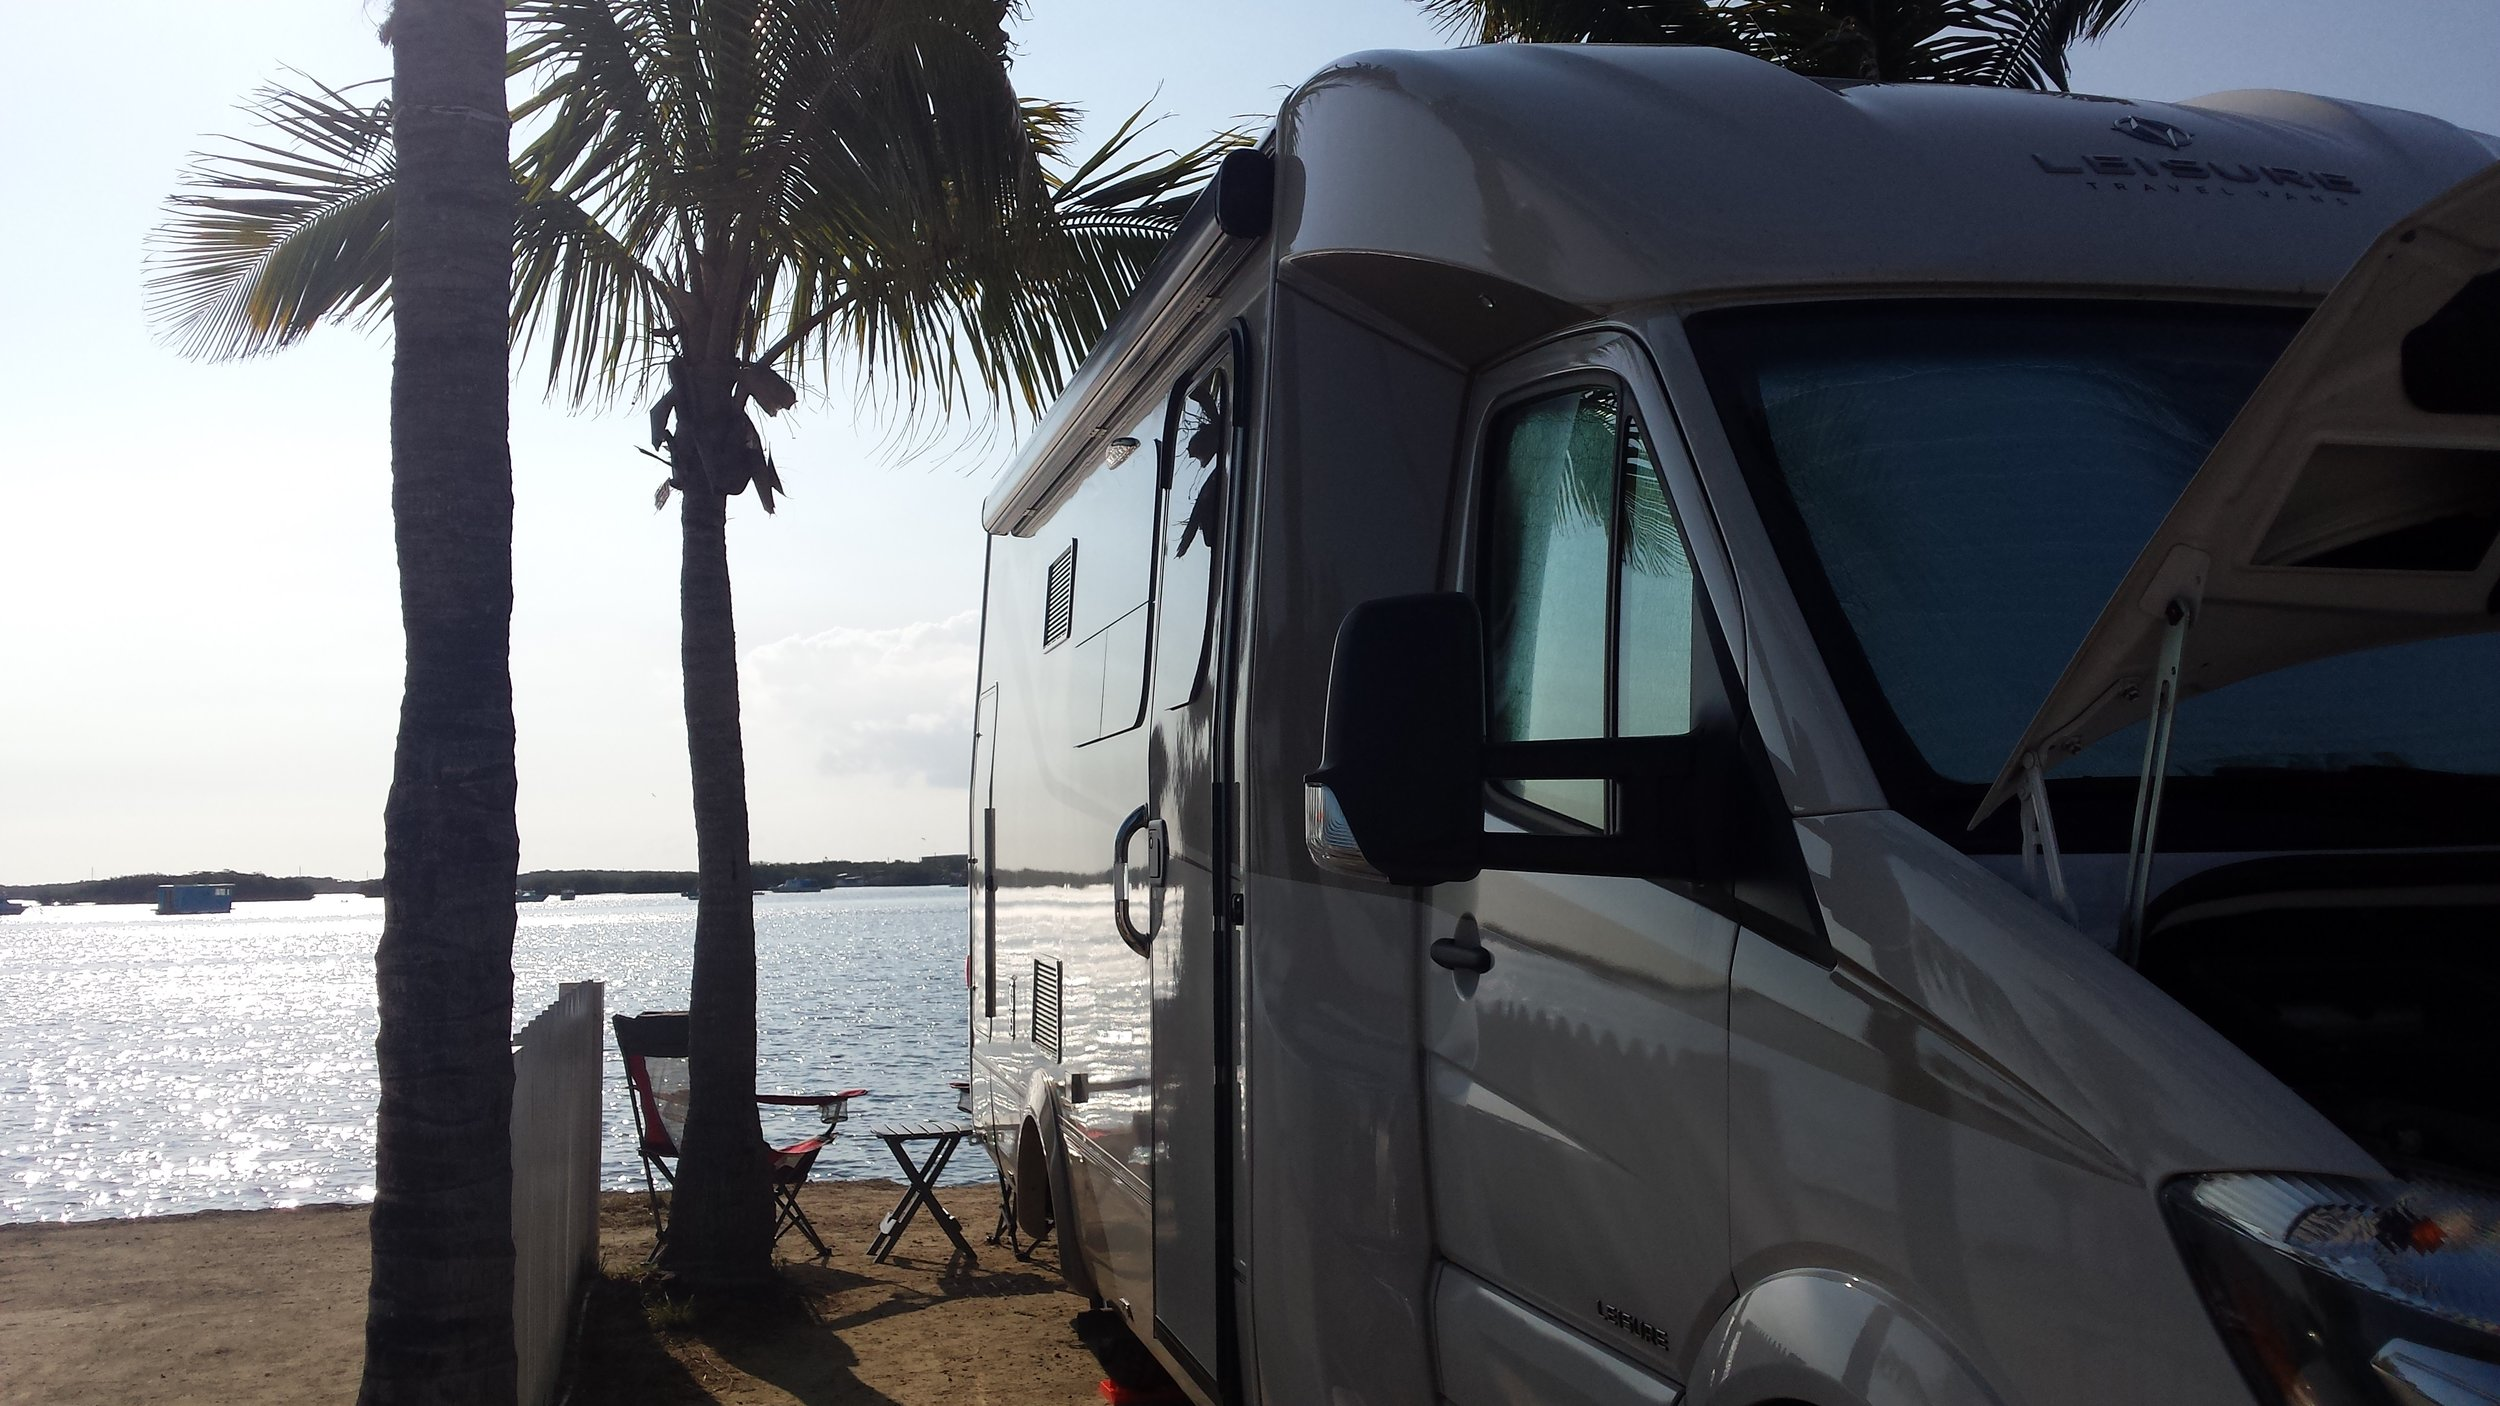 Bayside campsite at Boyd's in Key West